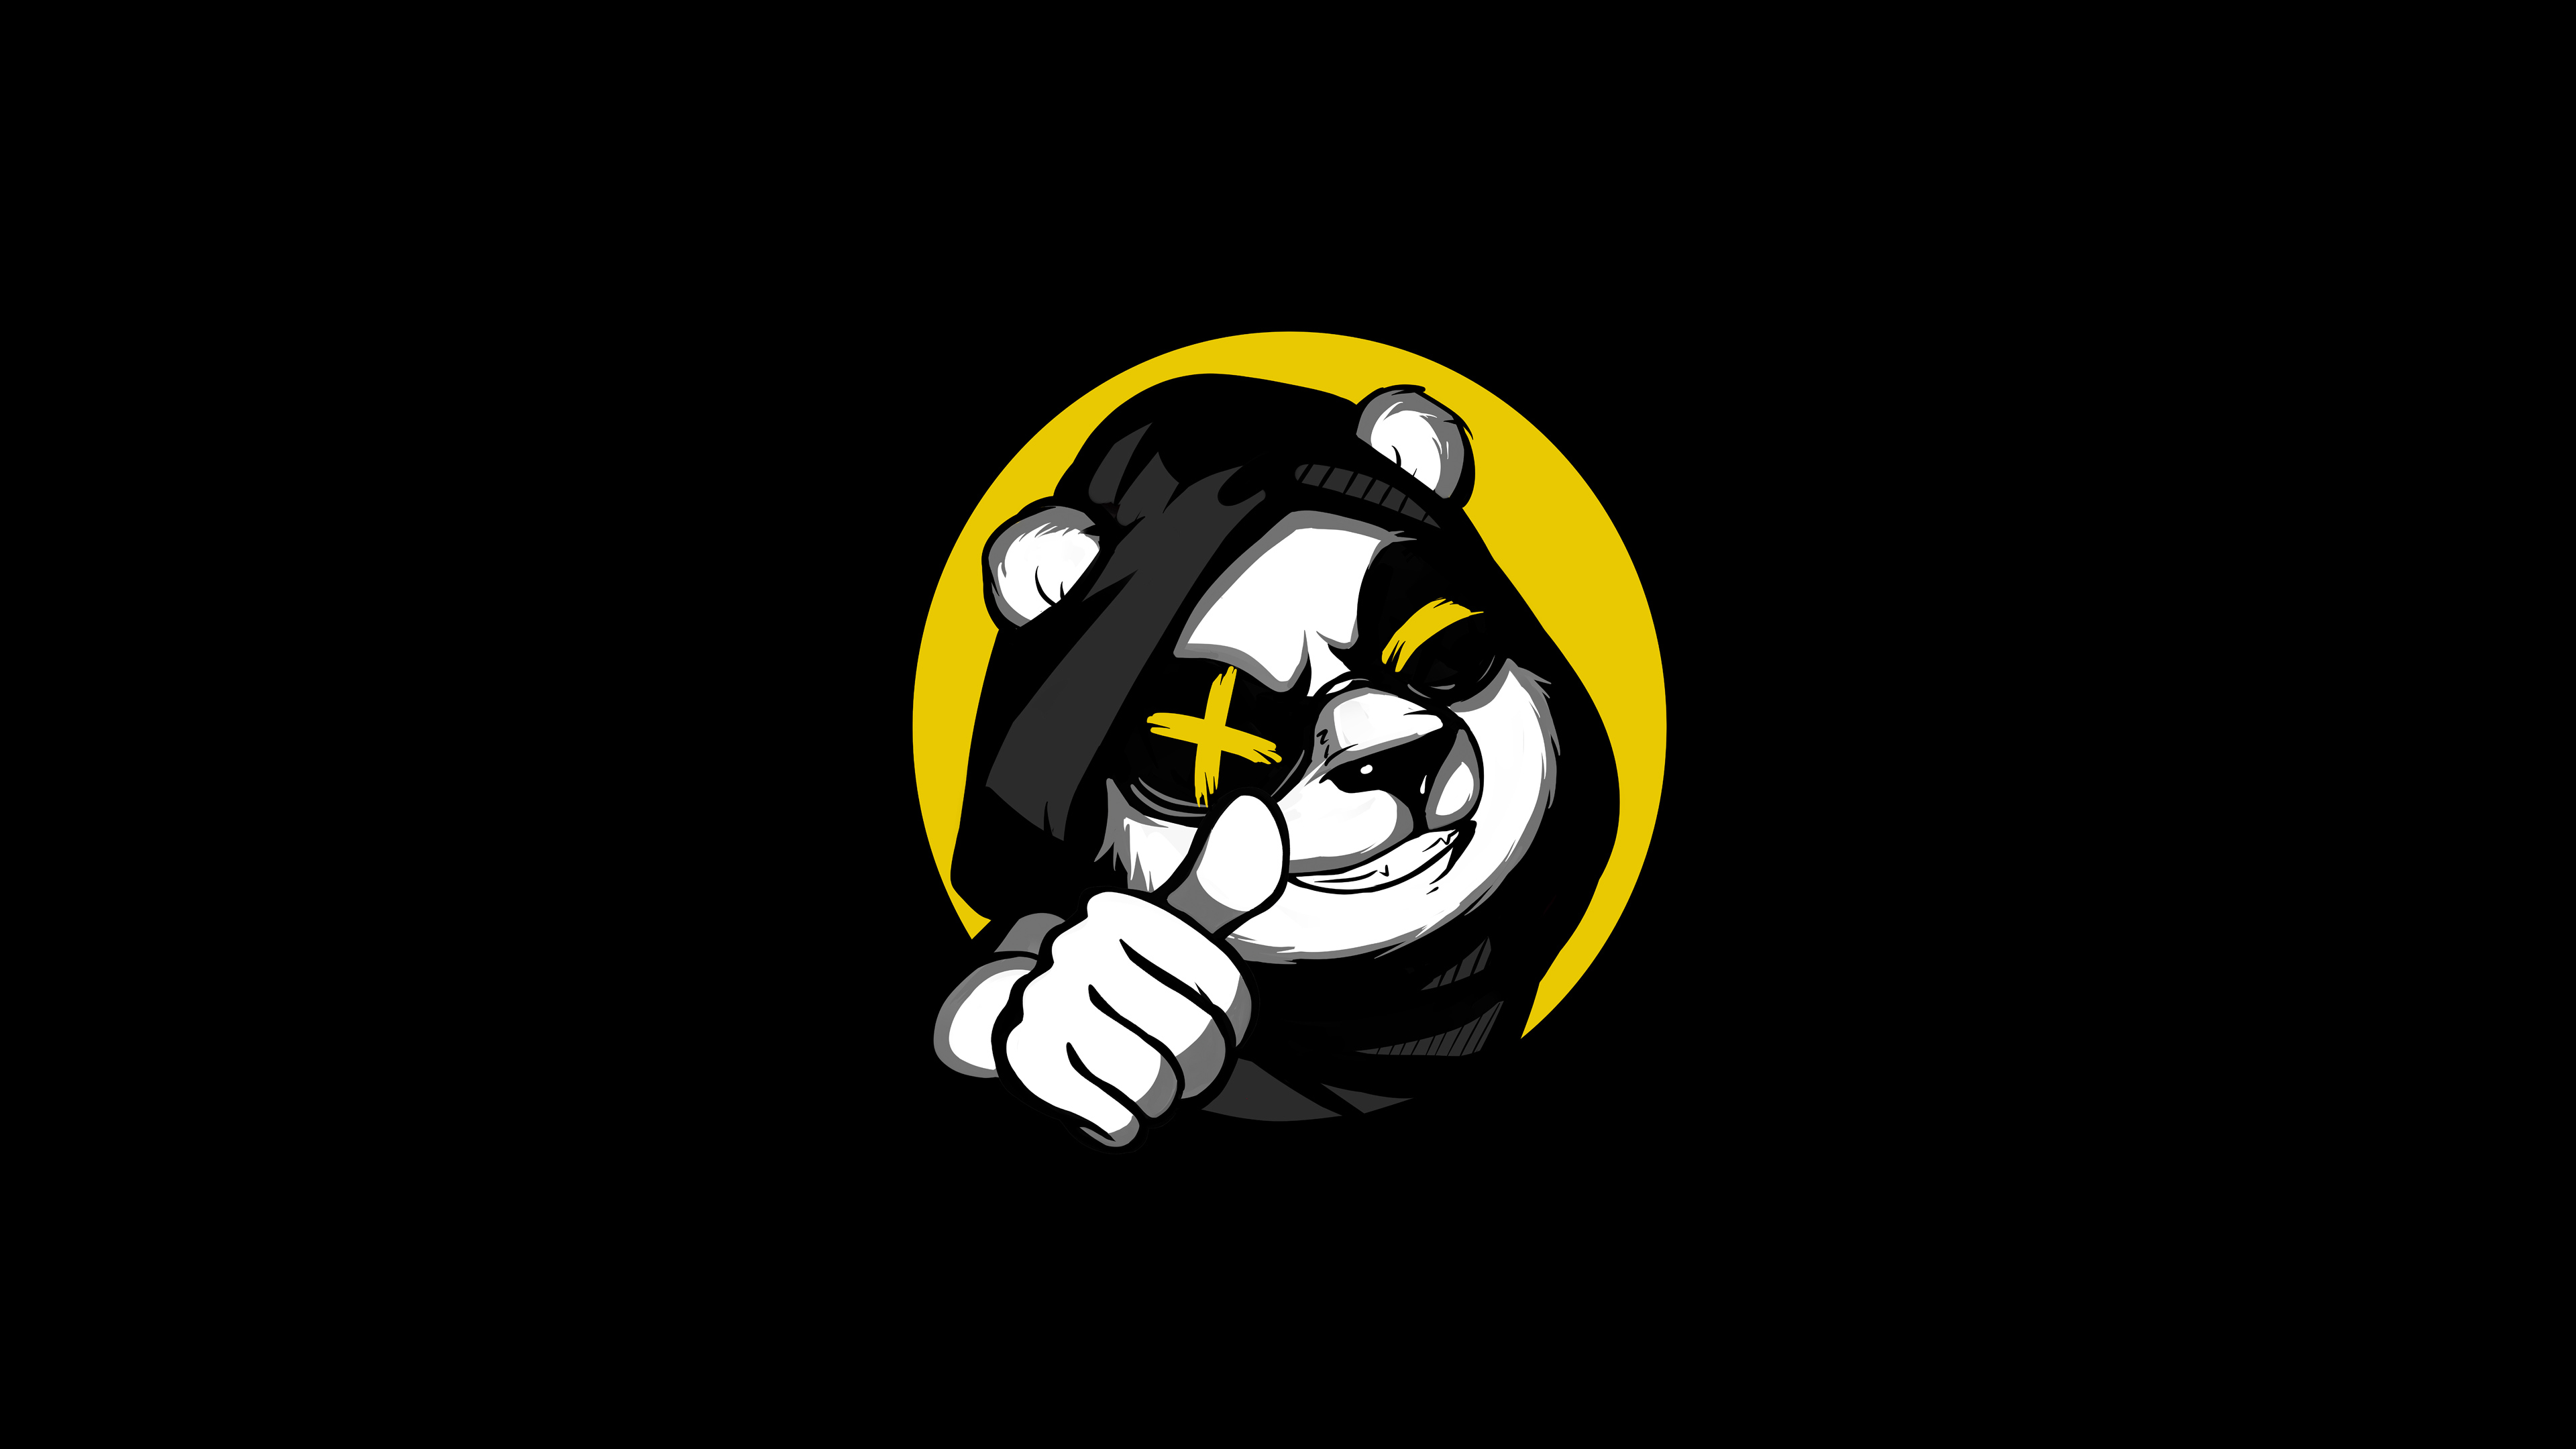 Cool Panda Thumb Up Minimal 4k Hd Artist 4k Wallpapers Images Backgrounds Photos And Pictures